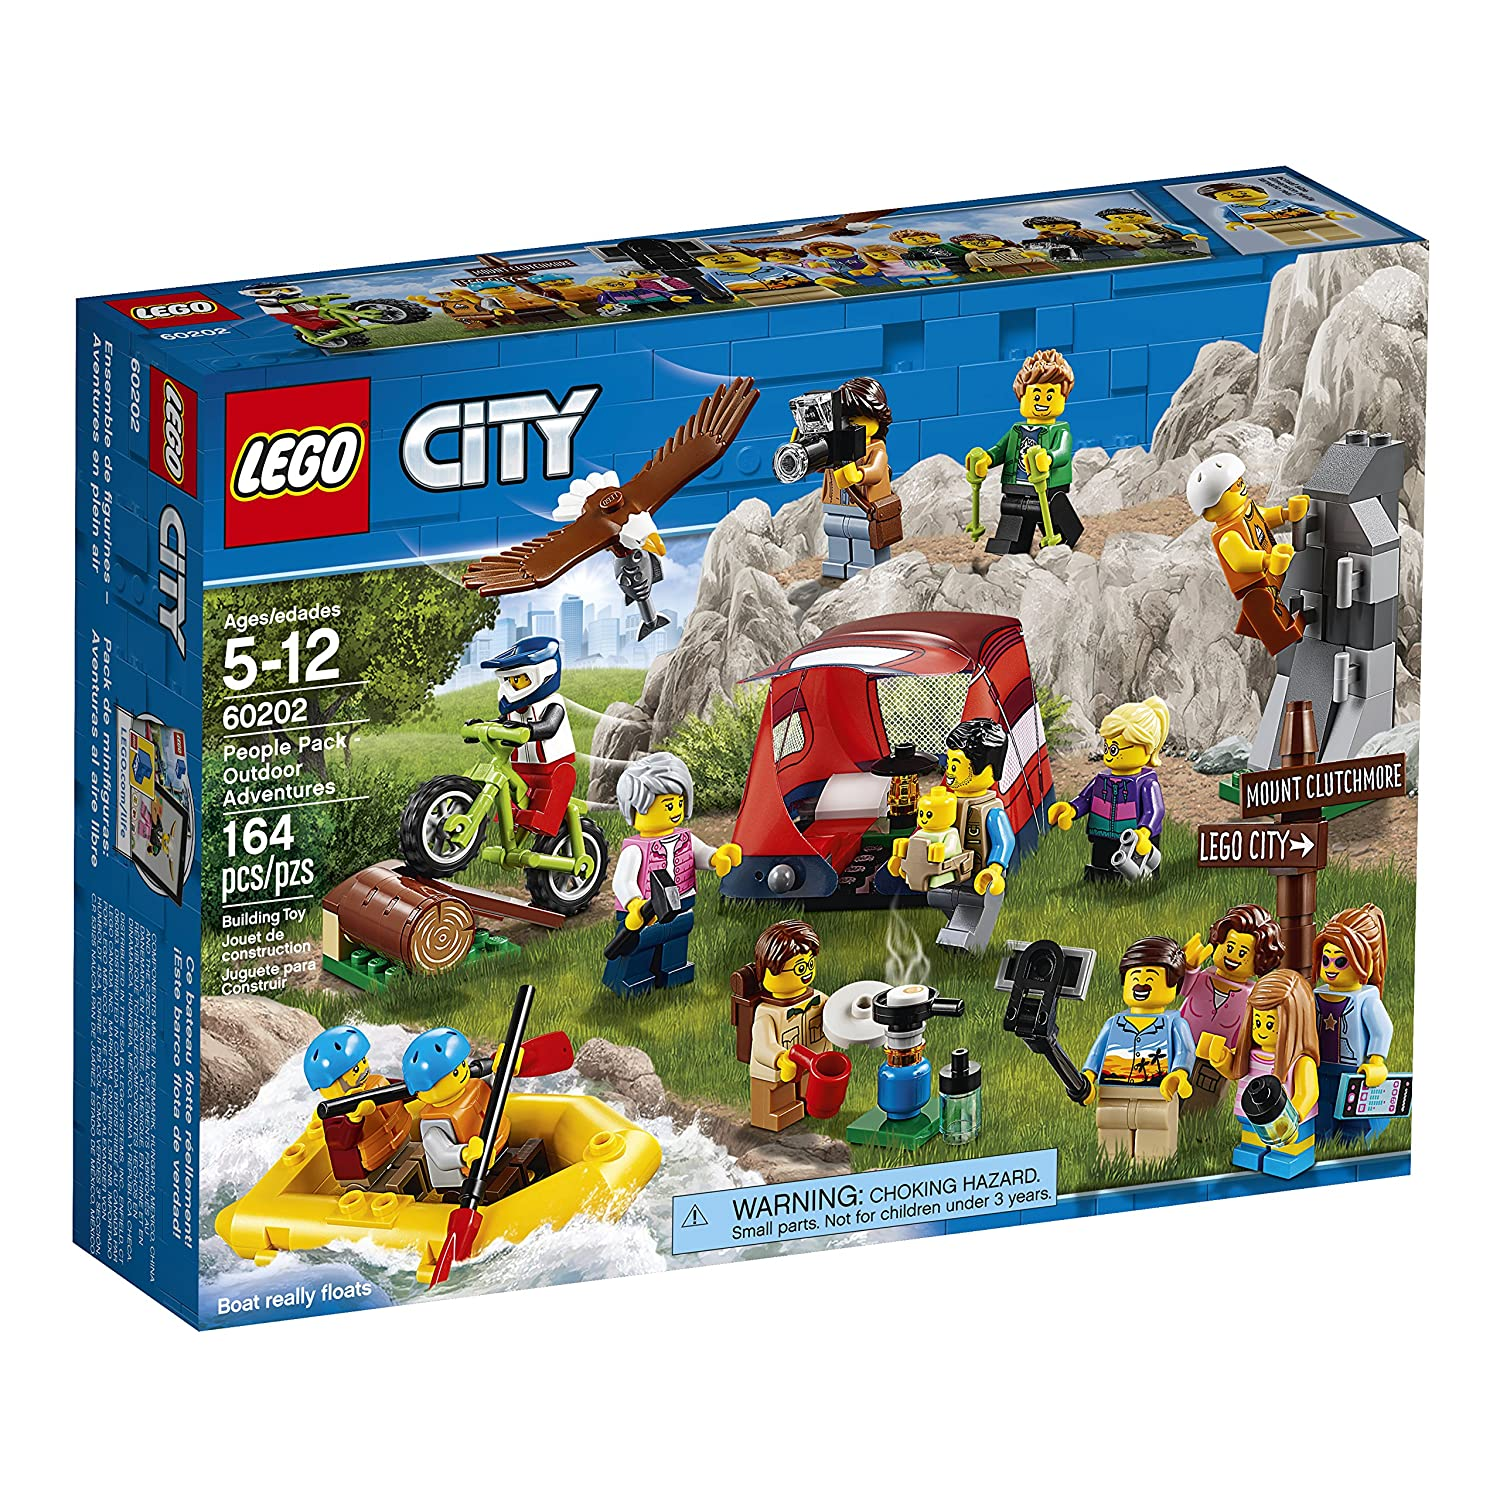 amazon lego city people pack outdoor adventures 60202 building kit